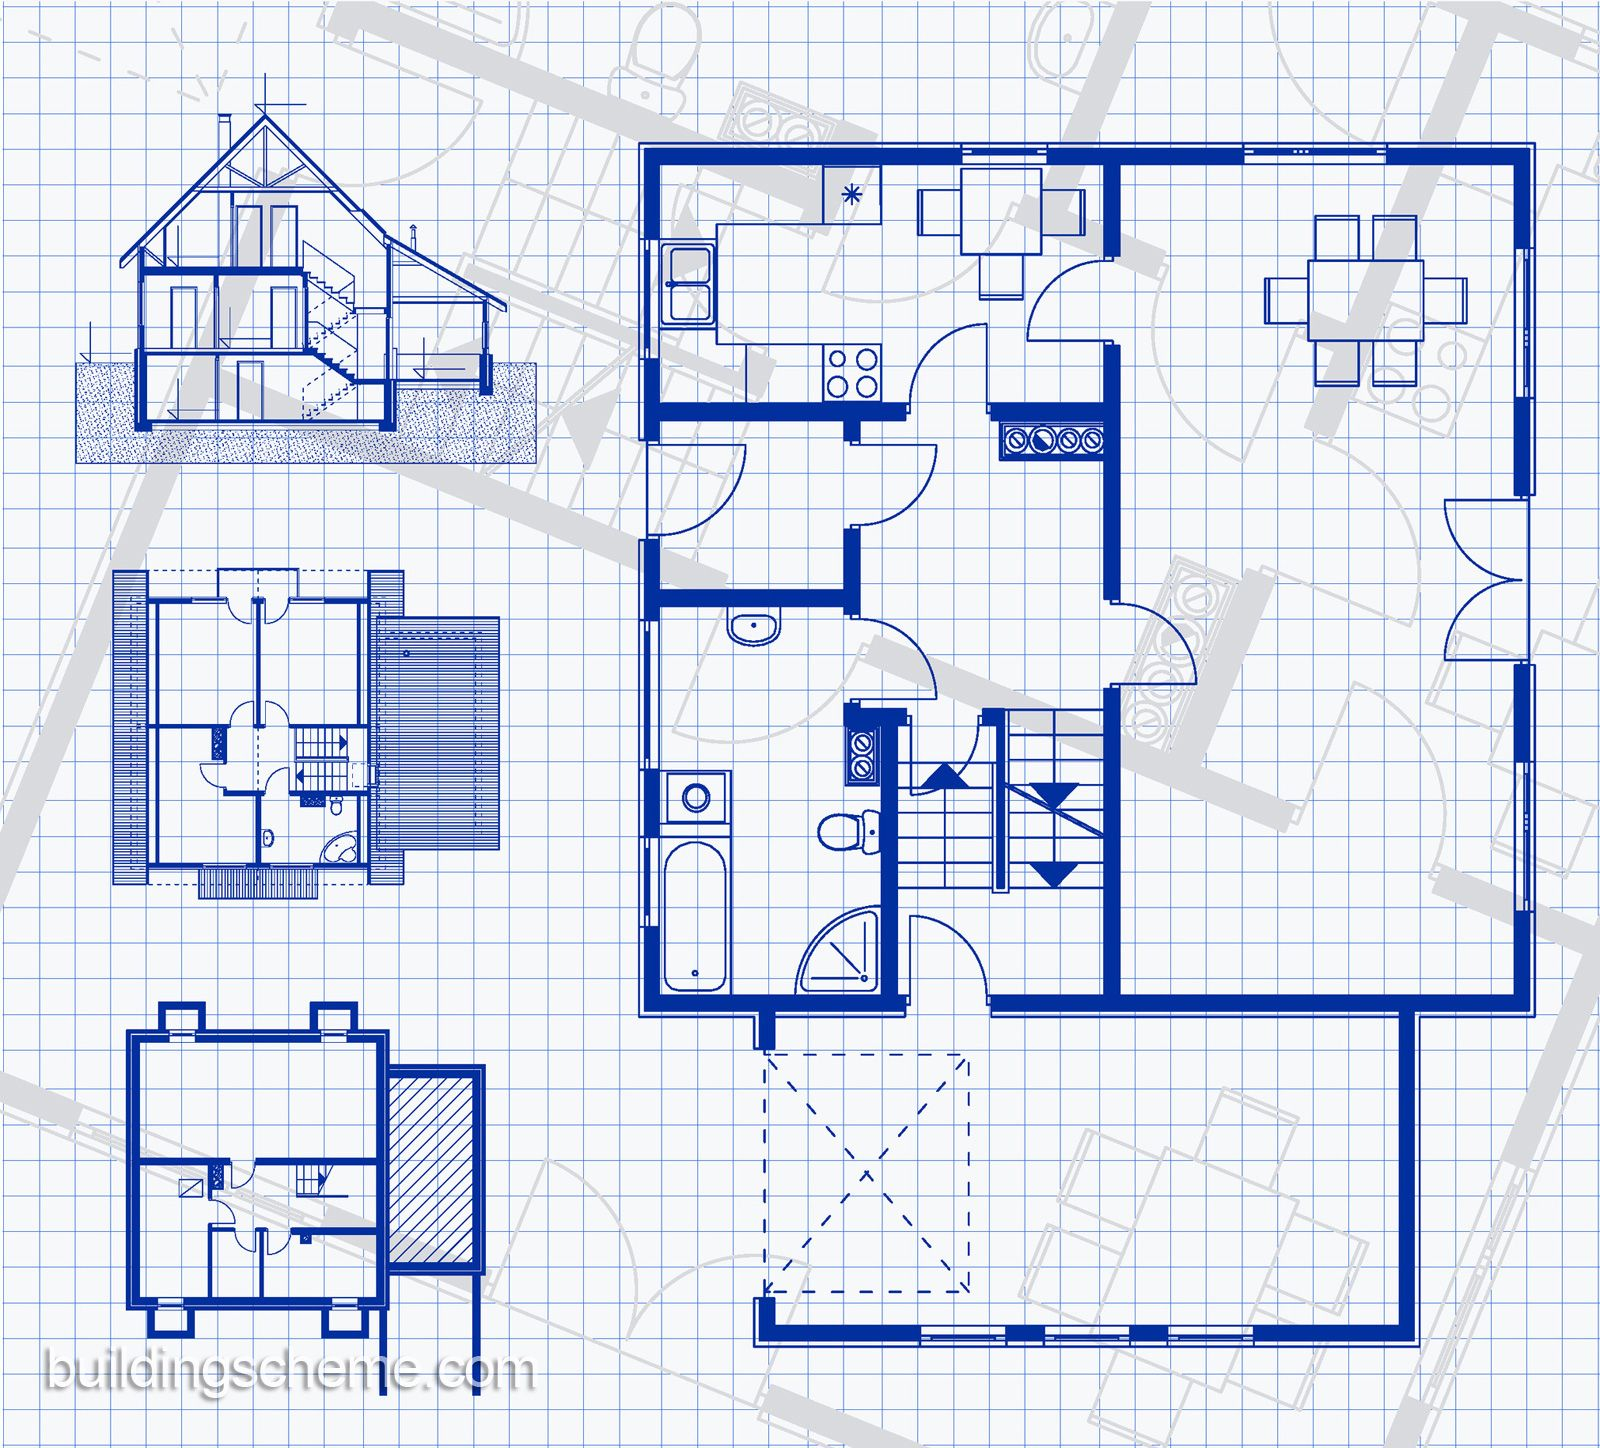 House Blueprint Ideas house blueprints | sdscad-house-plans-18 | stevenmann | pinterest